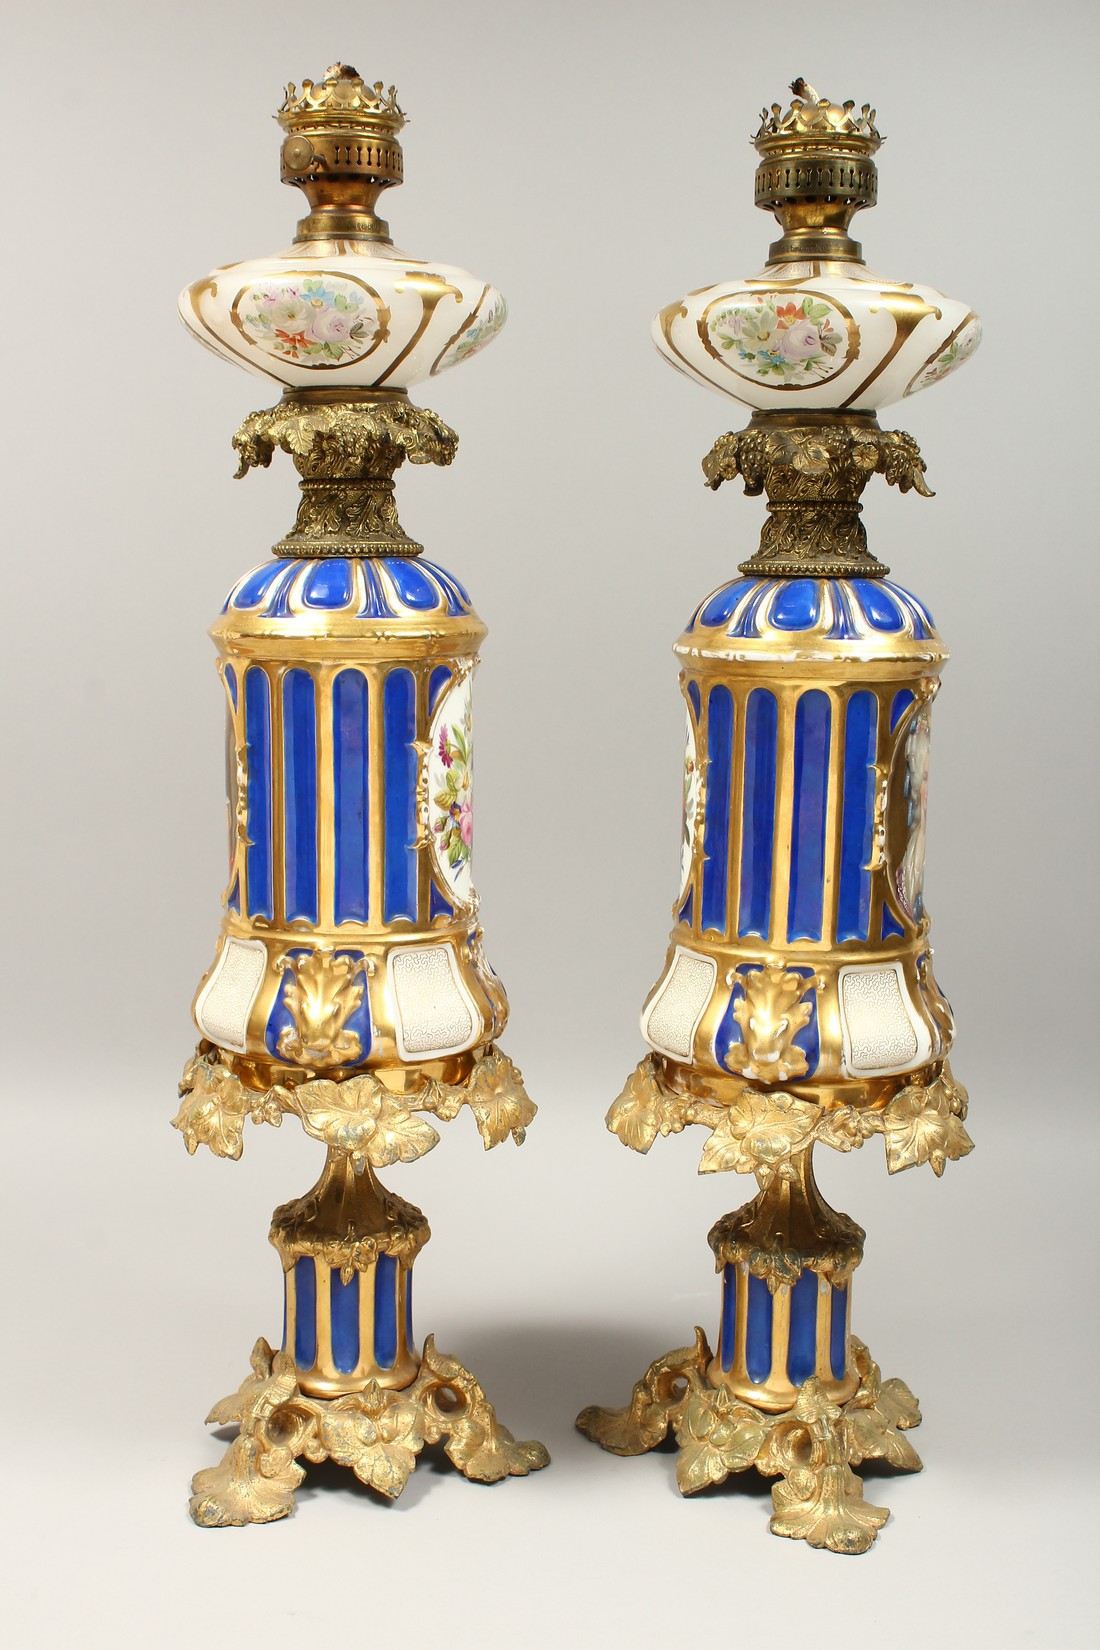 A SUPERB PAIR OF 19TH CENTURY FRENCH PORCELAIN AND GILT BRONZE LAMPS ON STANDS, painted with - Image 16 of 24